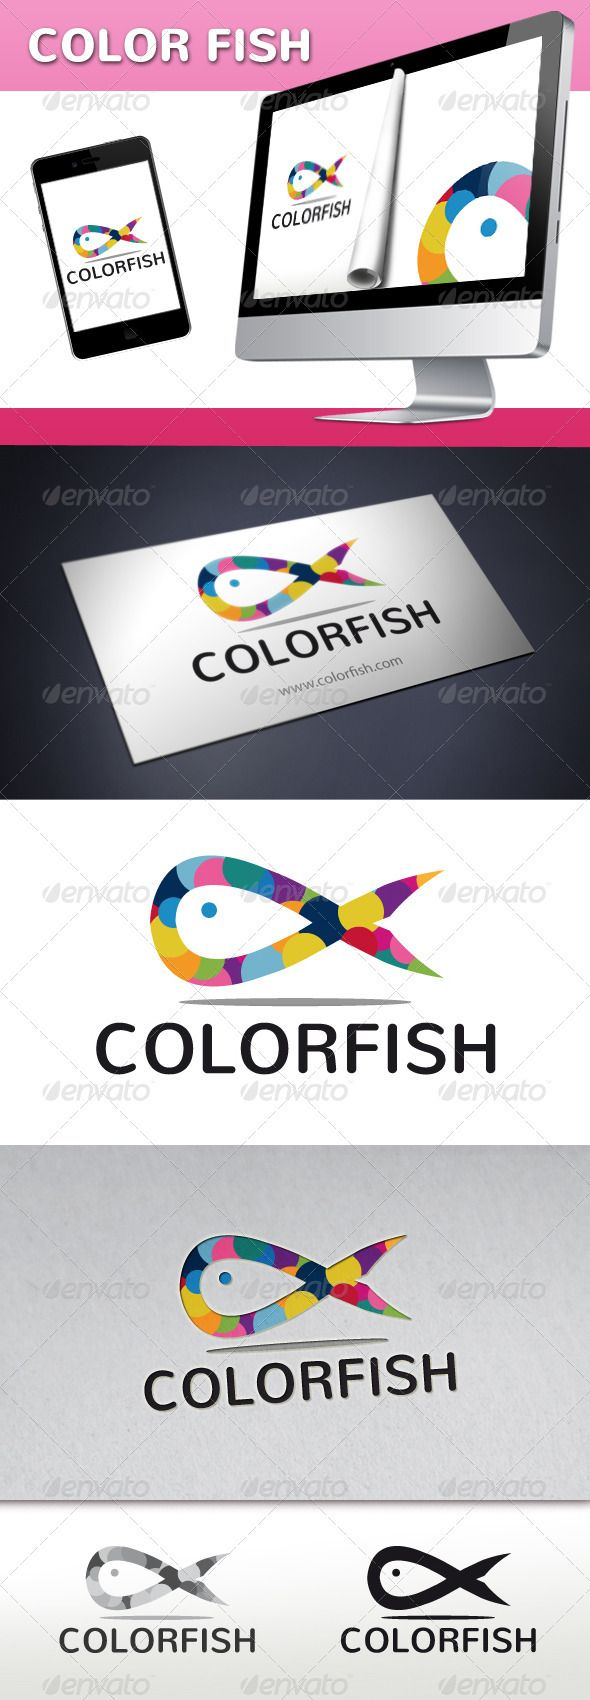 Restaurant logos and names related keywords amp suggestions restaurant - Fish Color Logo